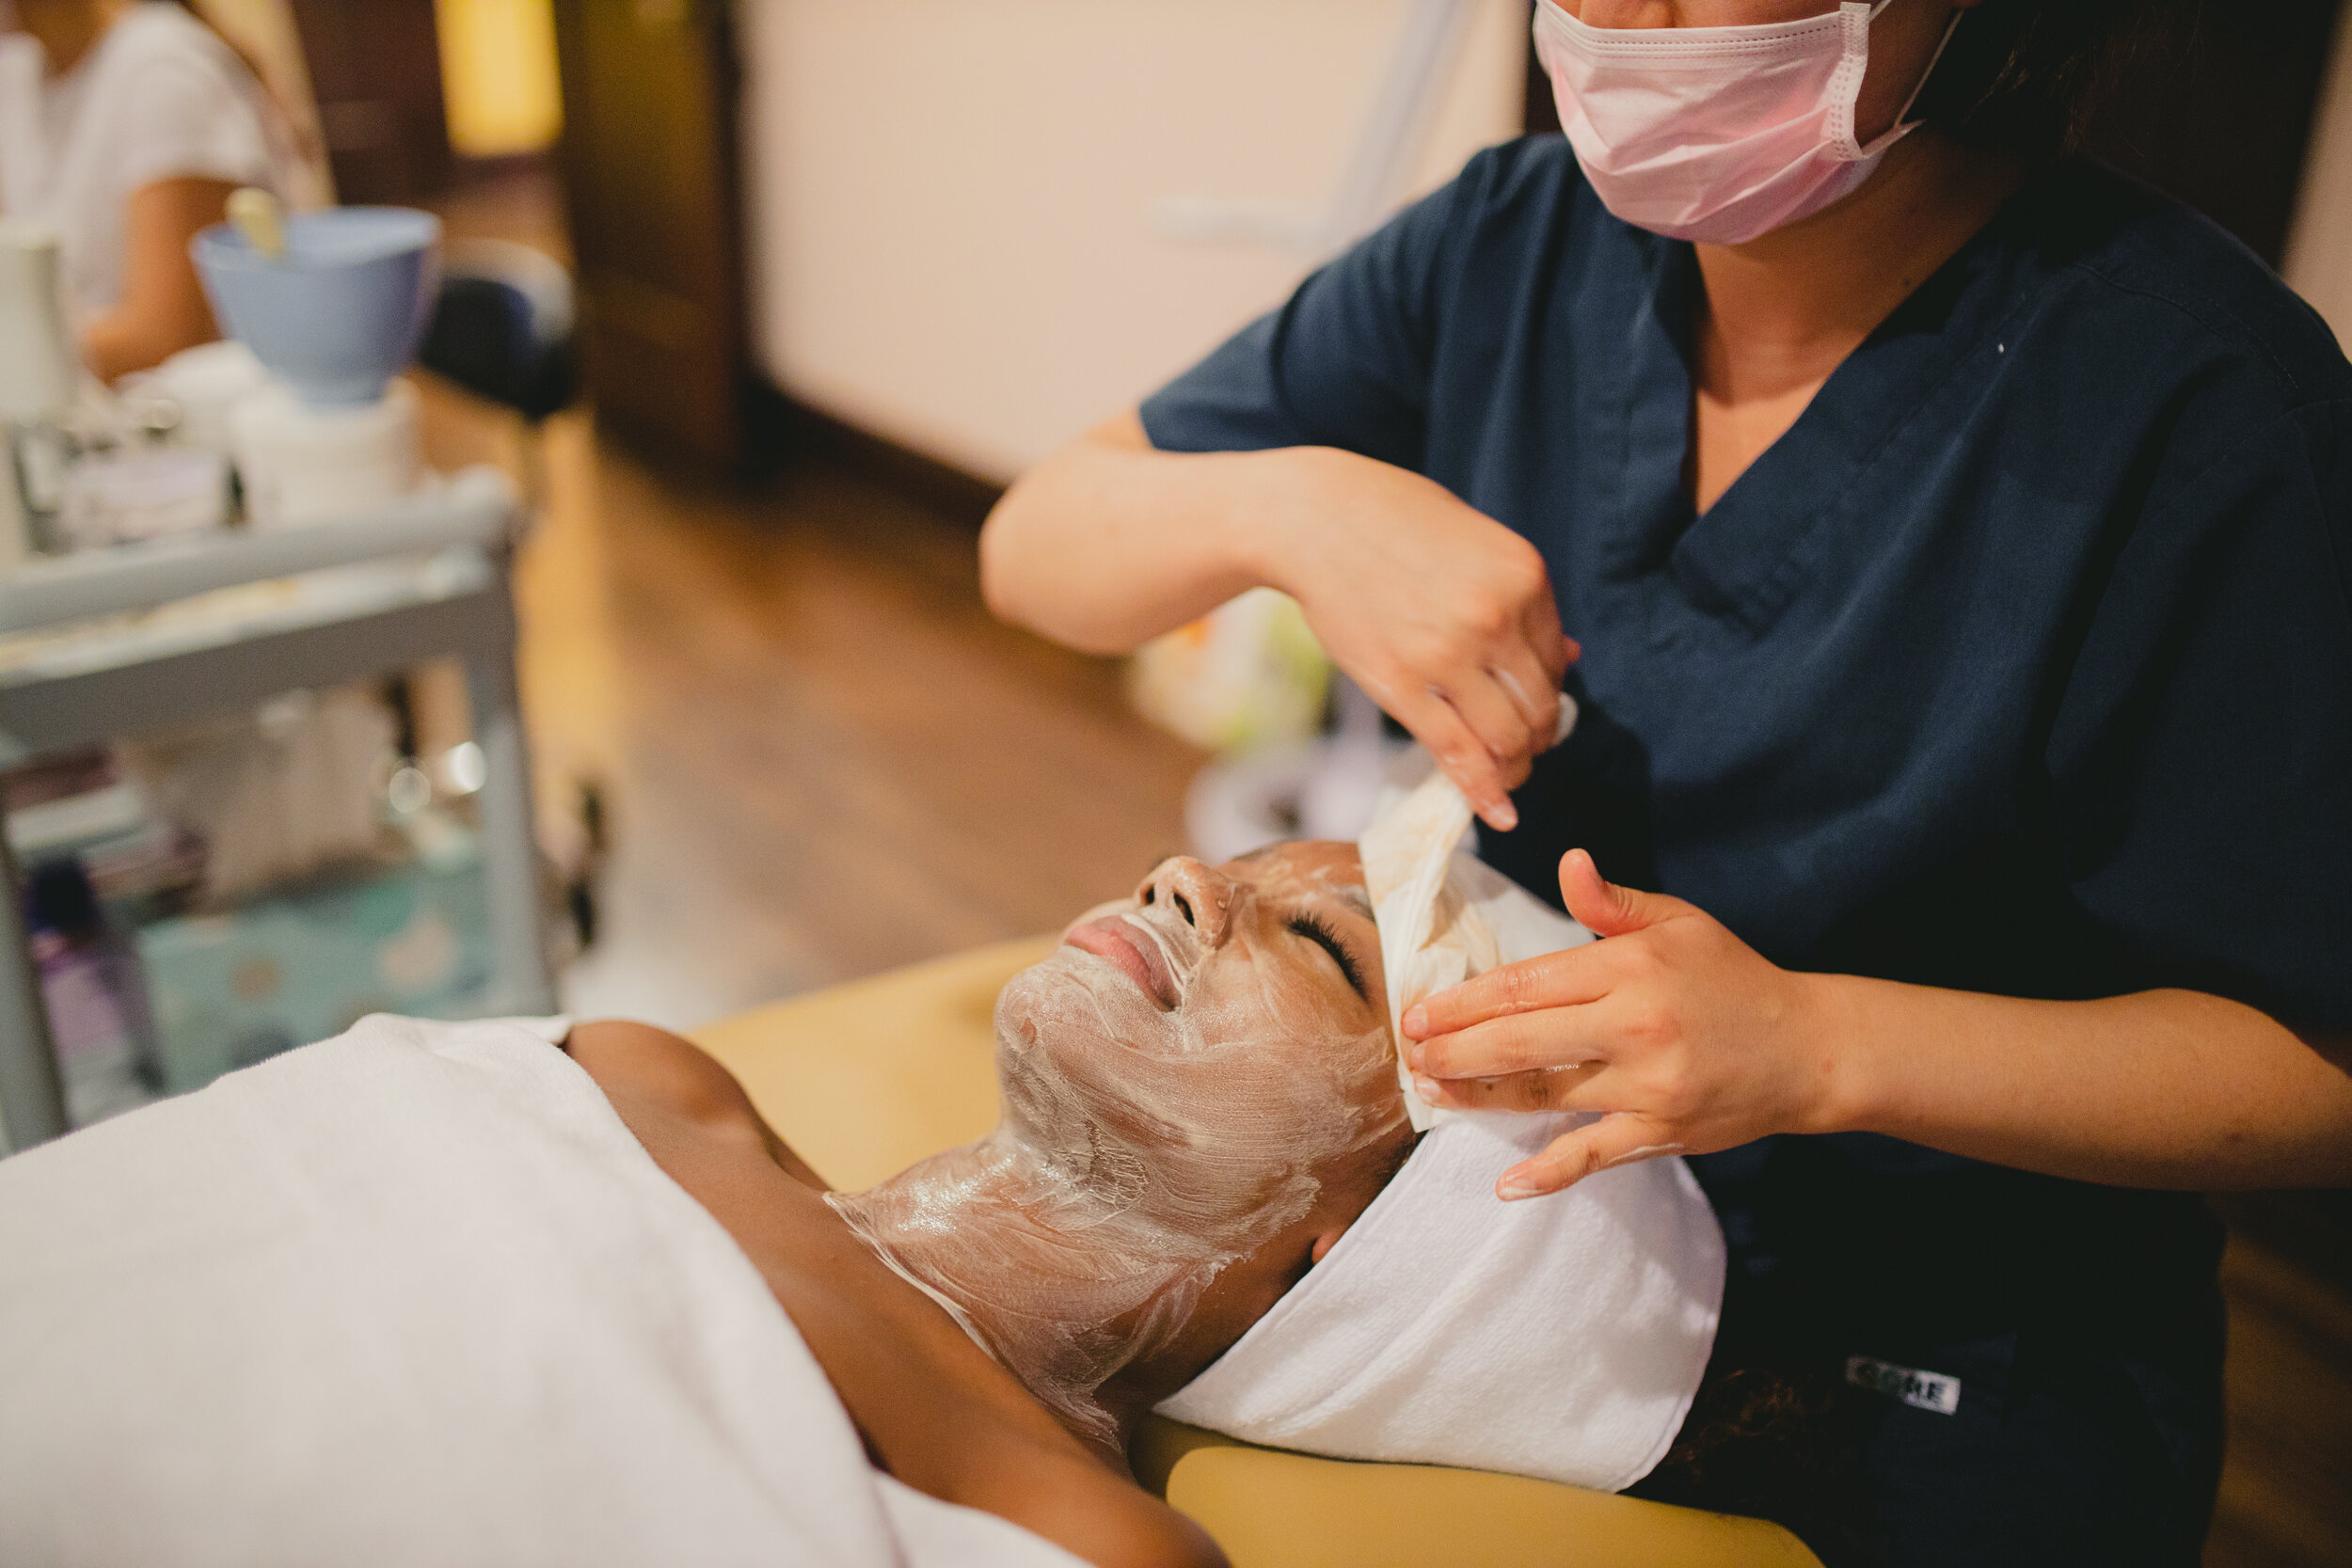 """Betina G.October 2019 (Yelp) - """"I am LOVING this place. I am one year into living here in LA, and I have been at least 6 times in the past 6 months. I am a skincare snob, and I get massages at least 1x a week. It's my go to for a refresher for my skin PLUS a great massage. The pricing is great for the service, it's unreal! I get so many compliments on my skin, too! Thank you, LA Eve Skin ladies for giving me the best glow, relaxation, and service every time I come in!"""""""